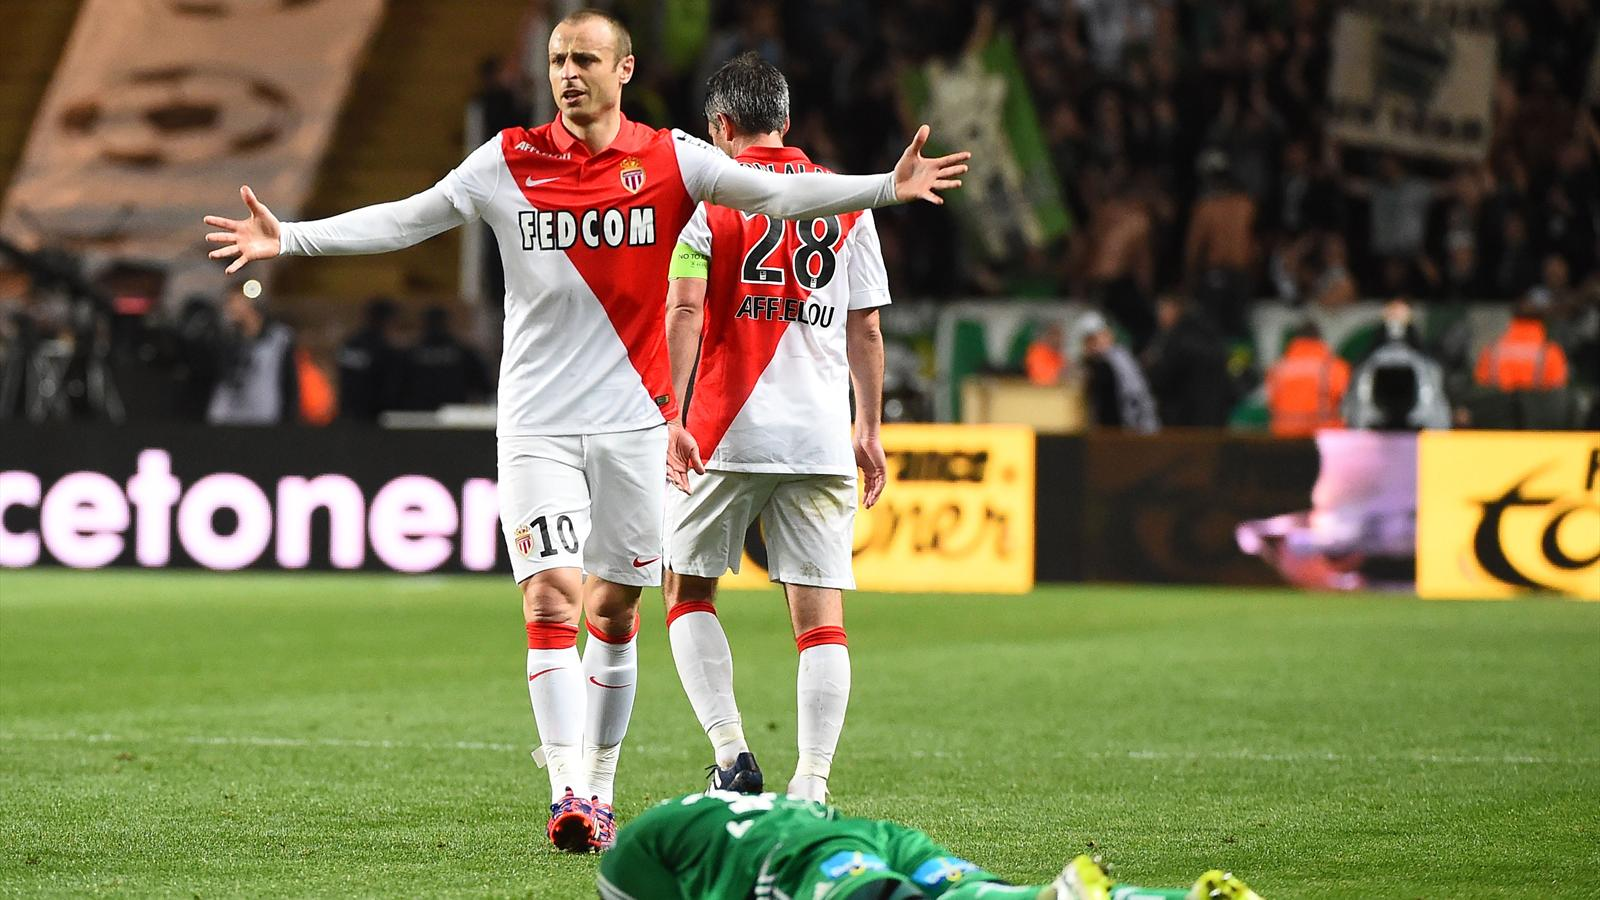 Video: Monaco vs Saint-Etienne